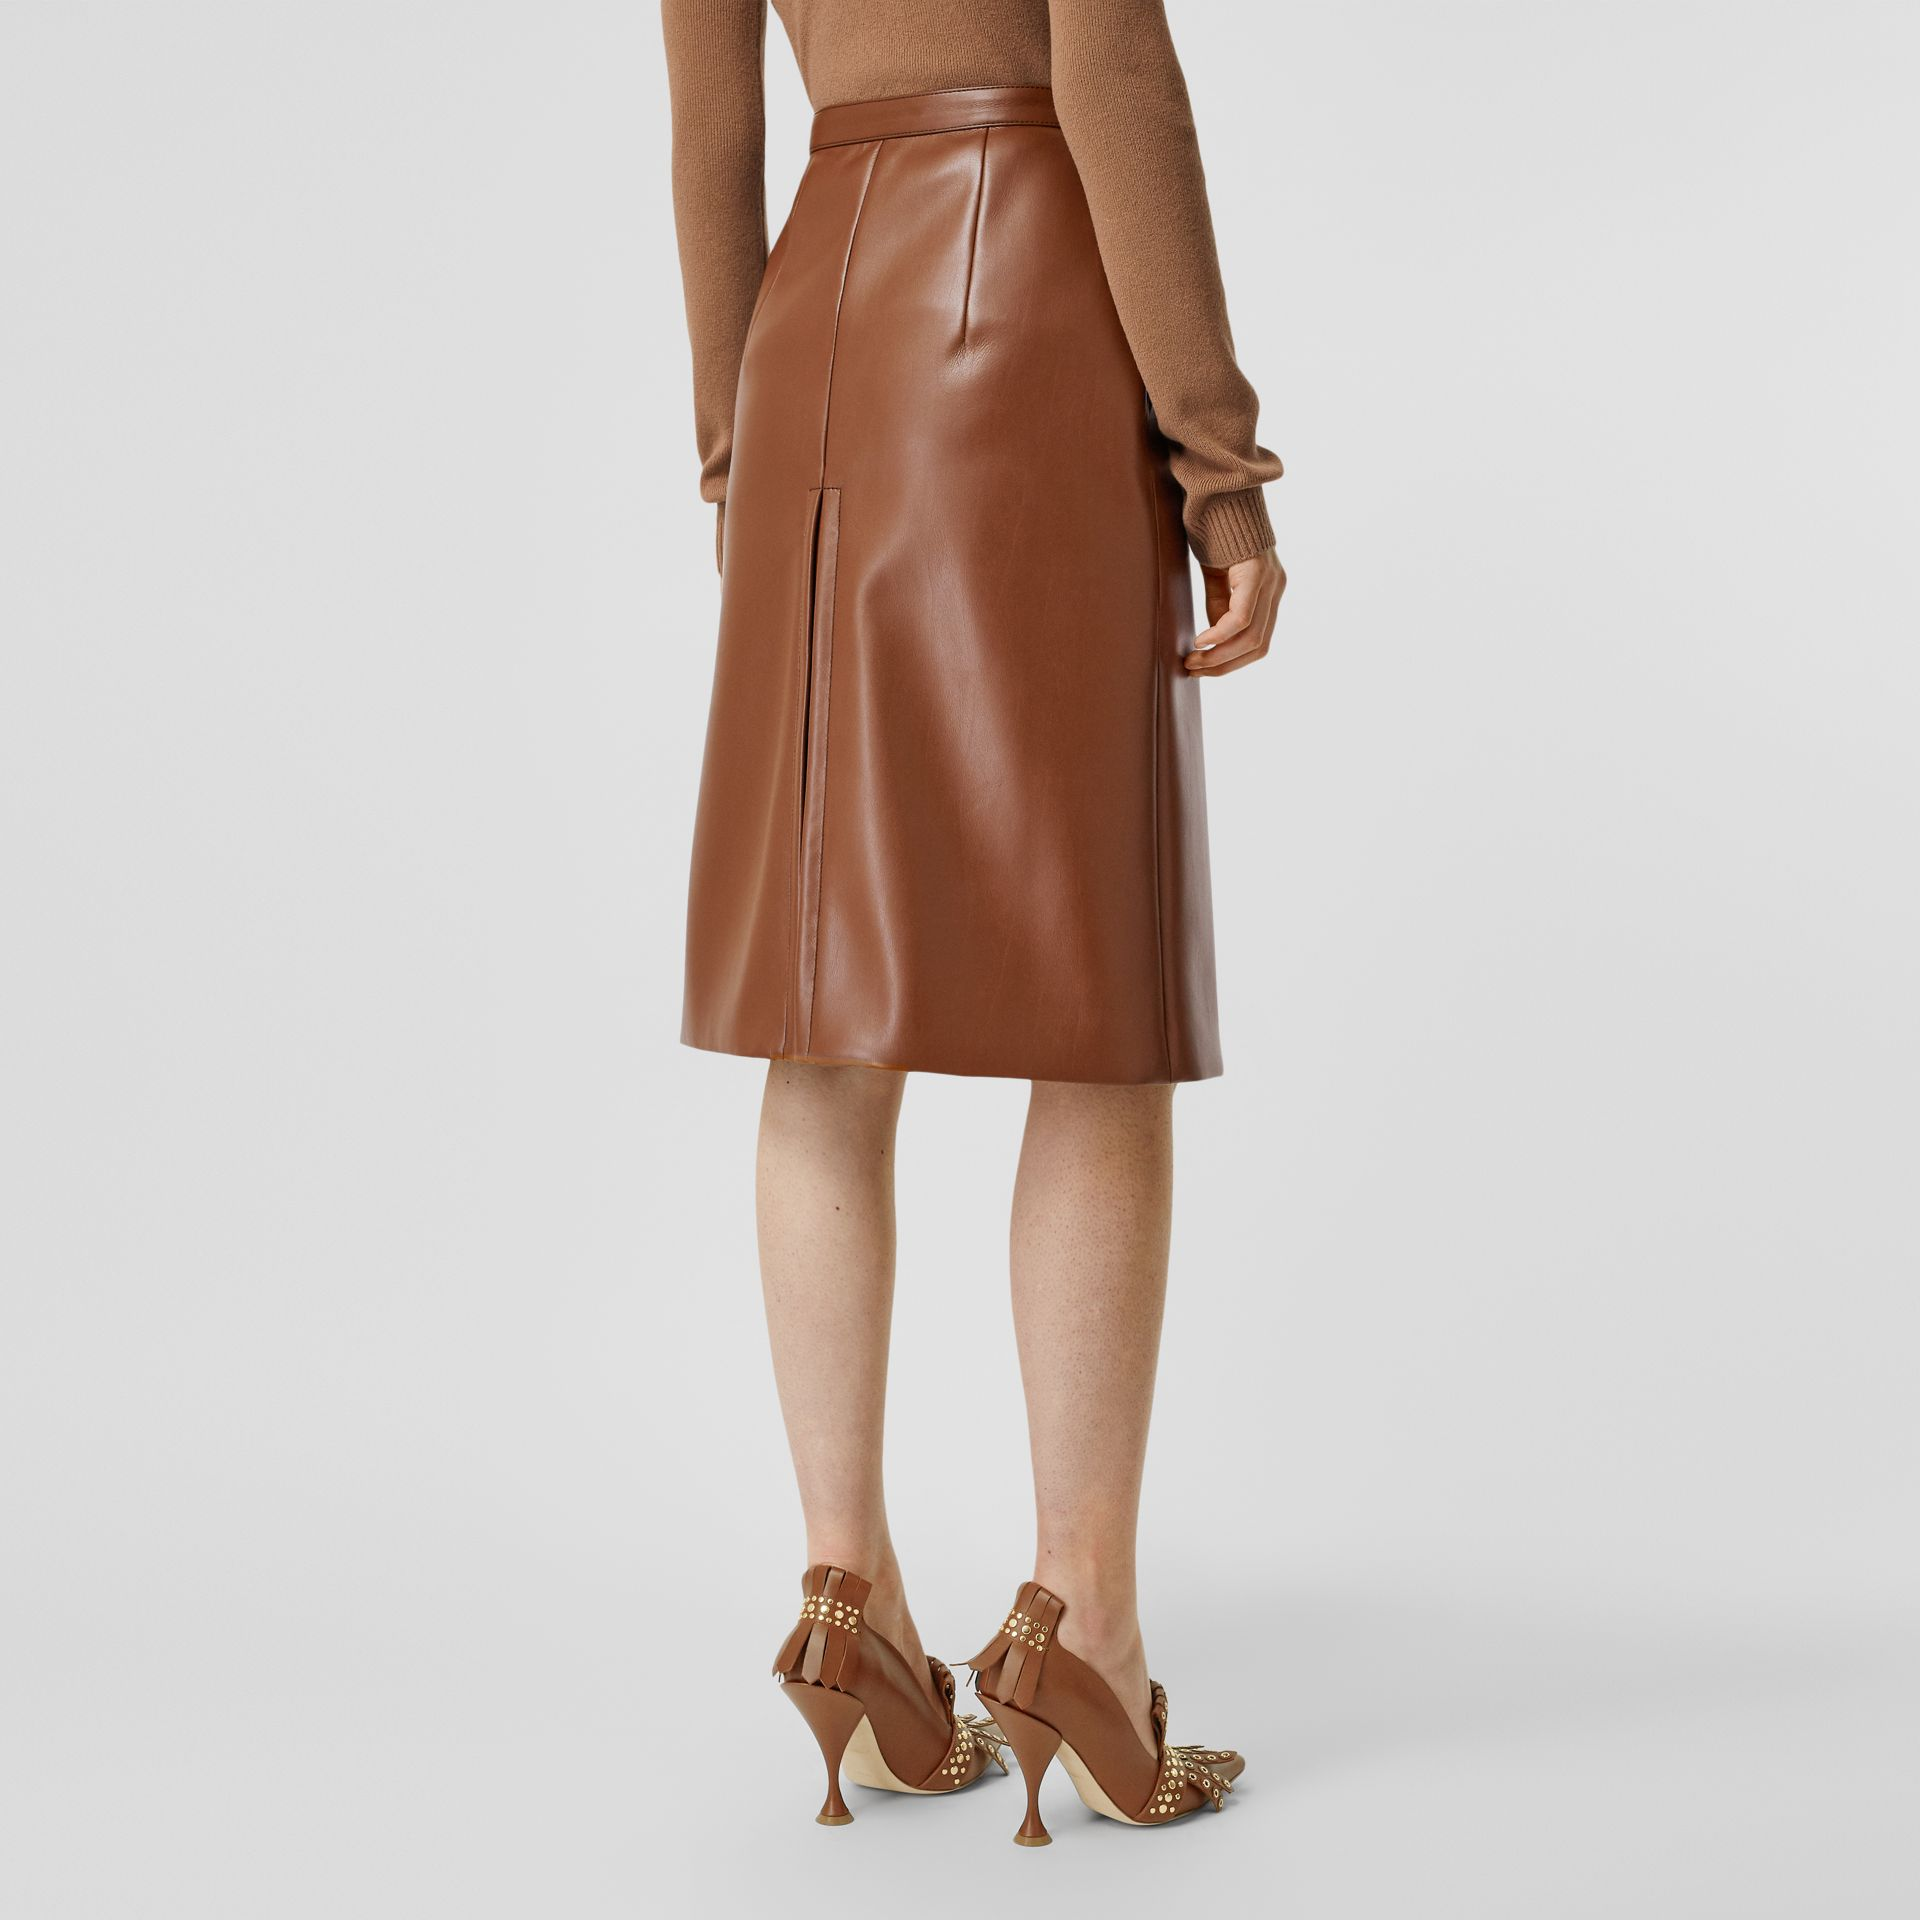 Box Pleat Detail Faux Leather Skirt in Dark Cheshnut Brown - Women | Burberry Hong Kong S.A.R - gallery image 2